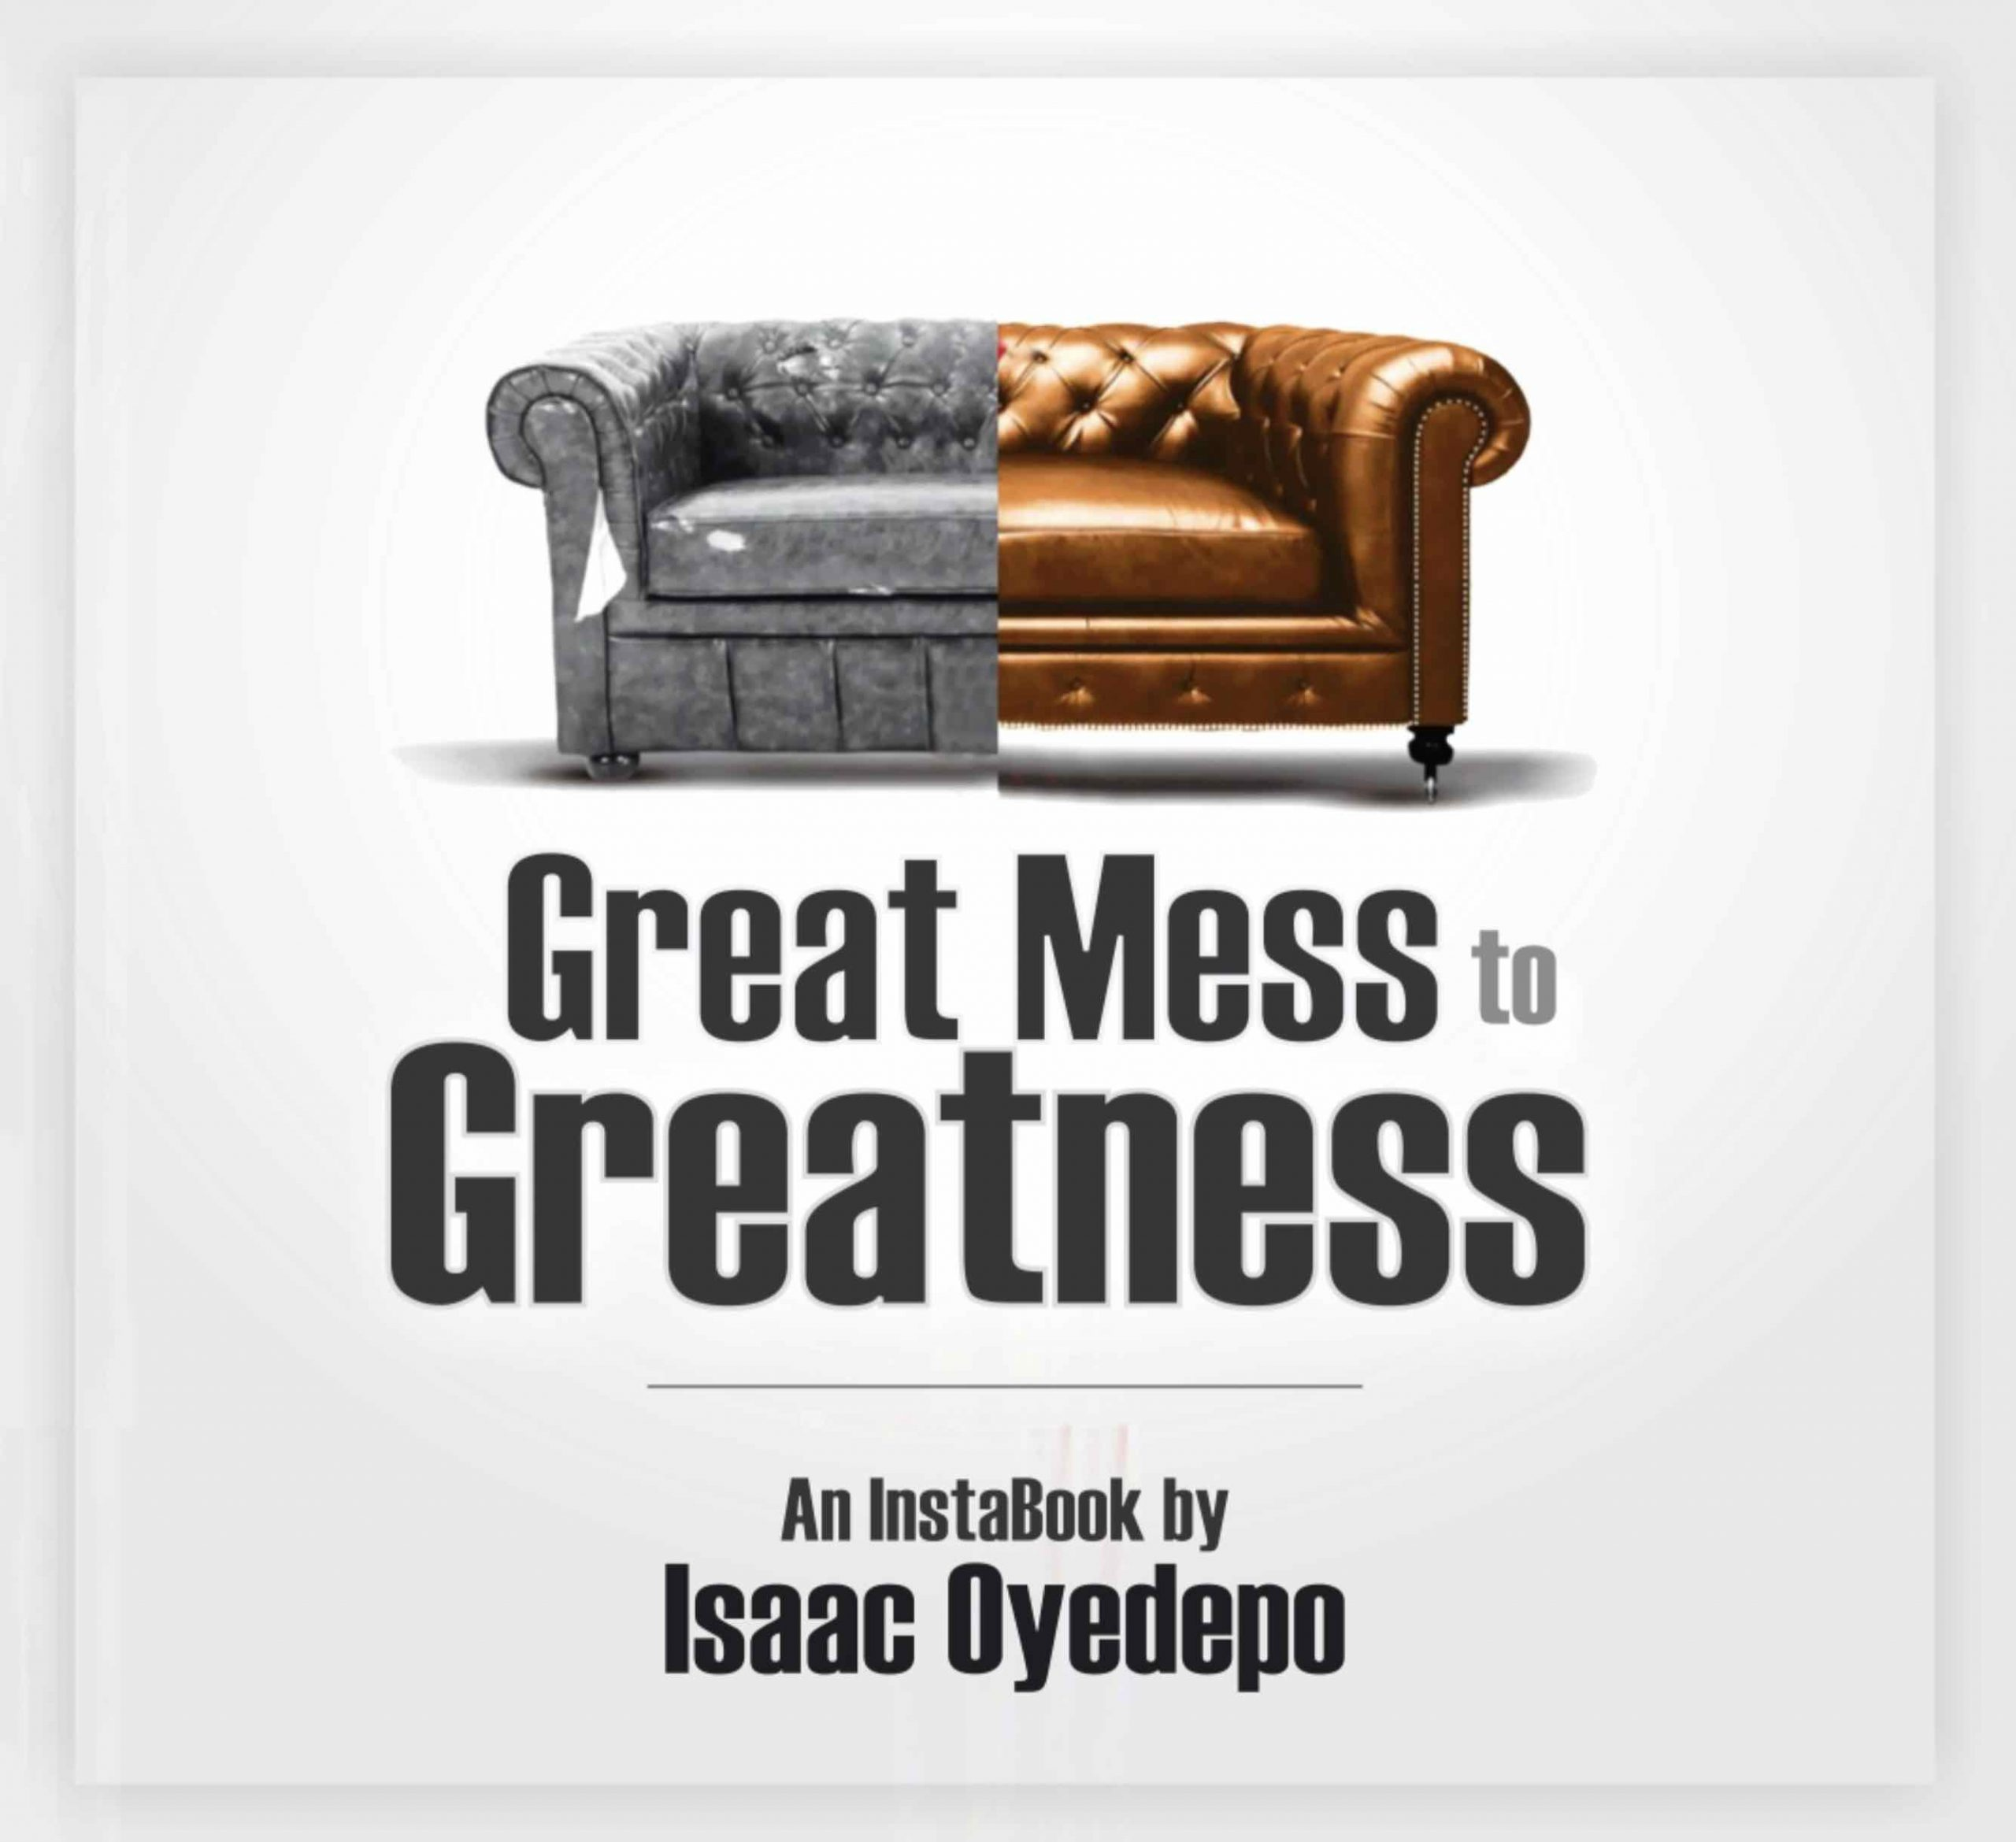 Great mess to Greatness